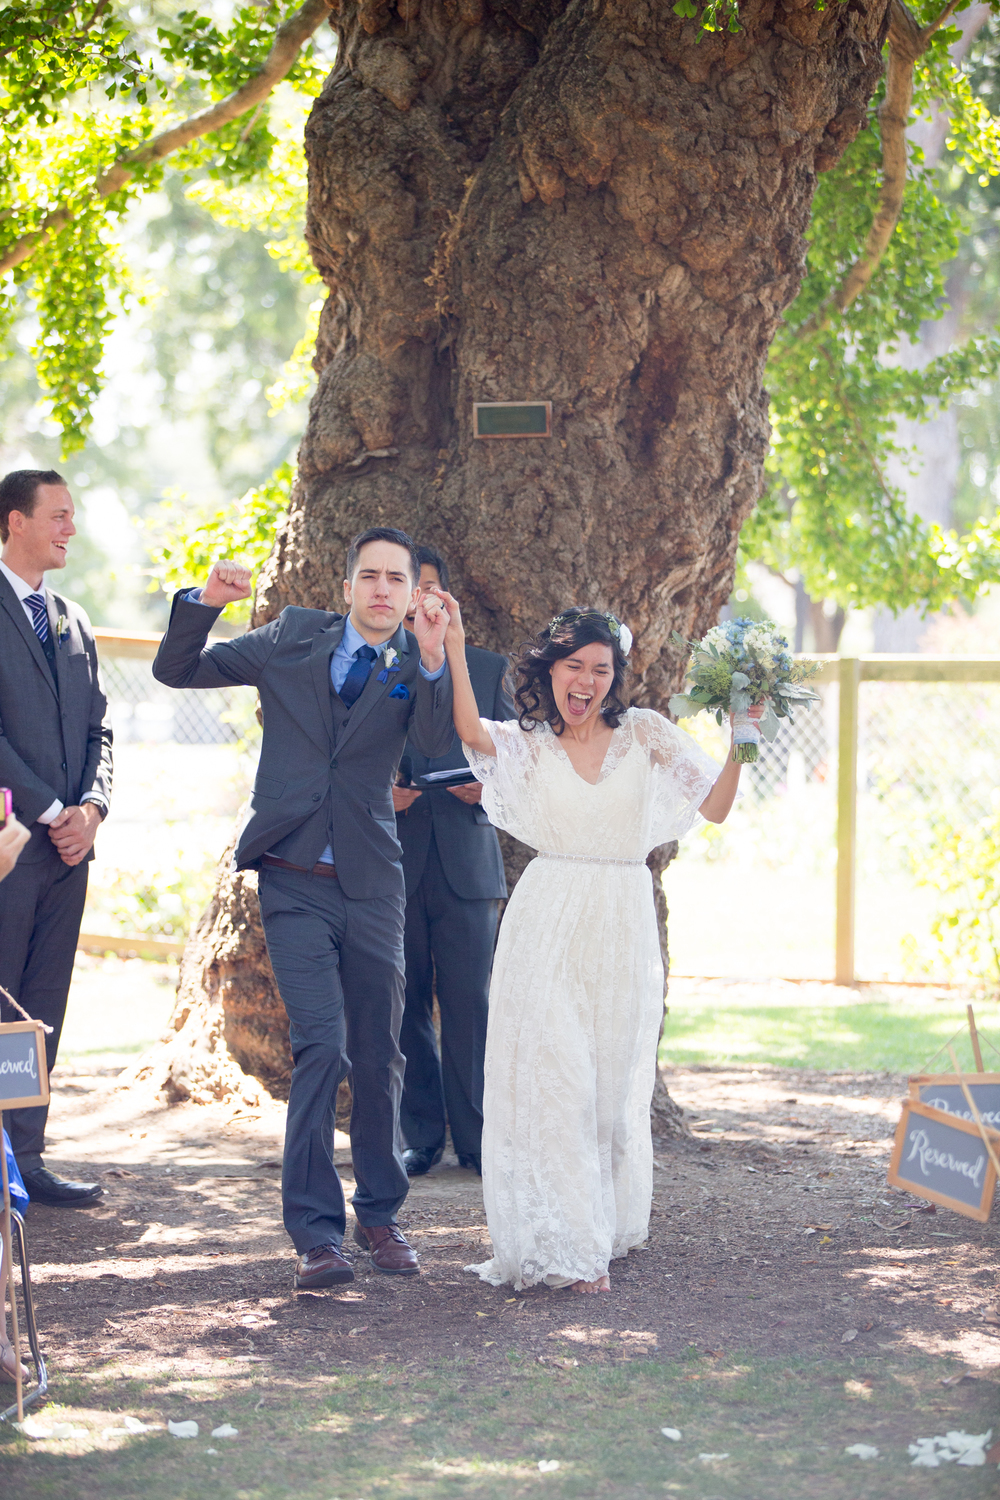 Chico California Wedding and Engagement Photography by TréCreative - Fremont Wedding Photography (183 of 261).jpg